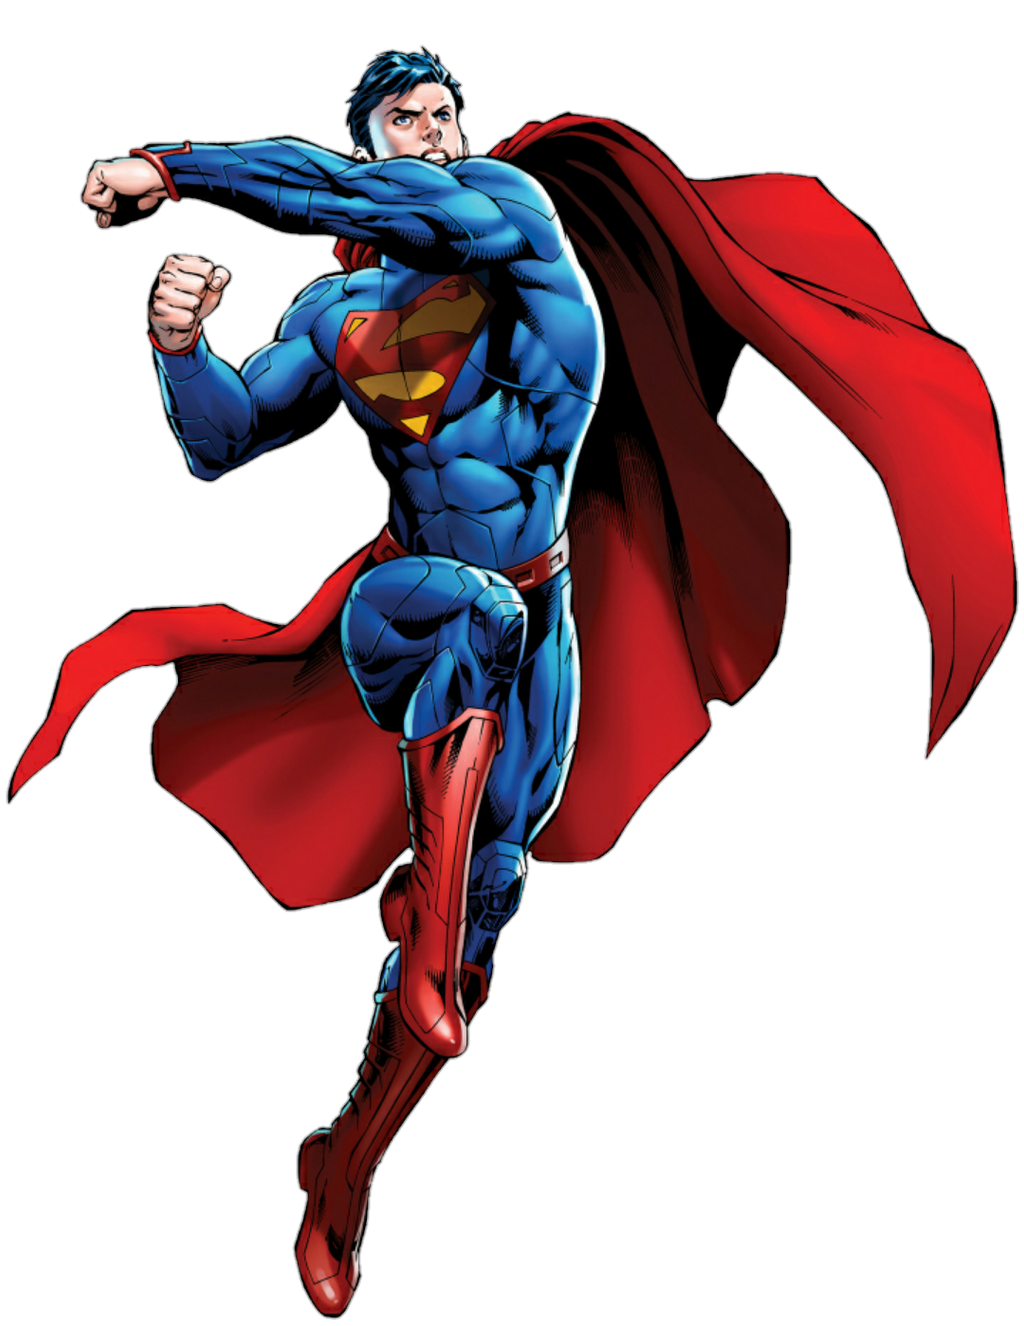 New 52 superman by mayantimegod on deviantart for 52 time table